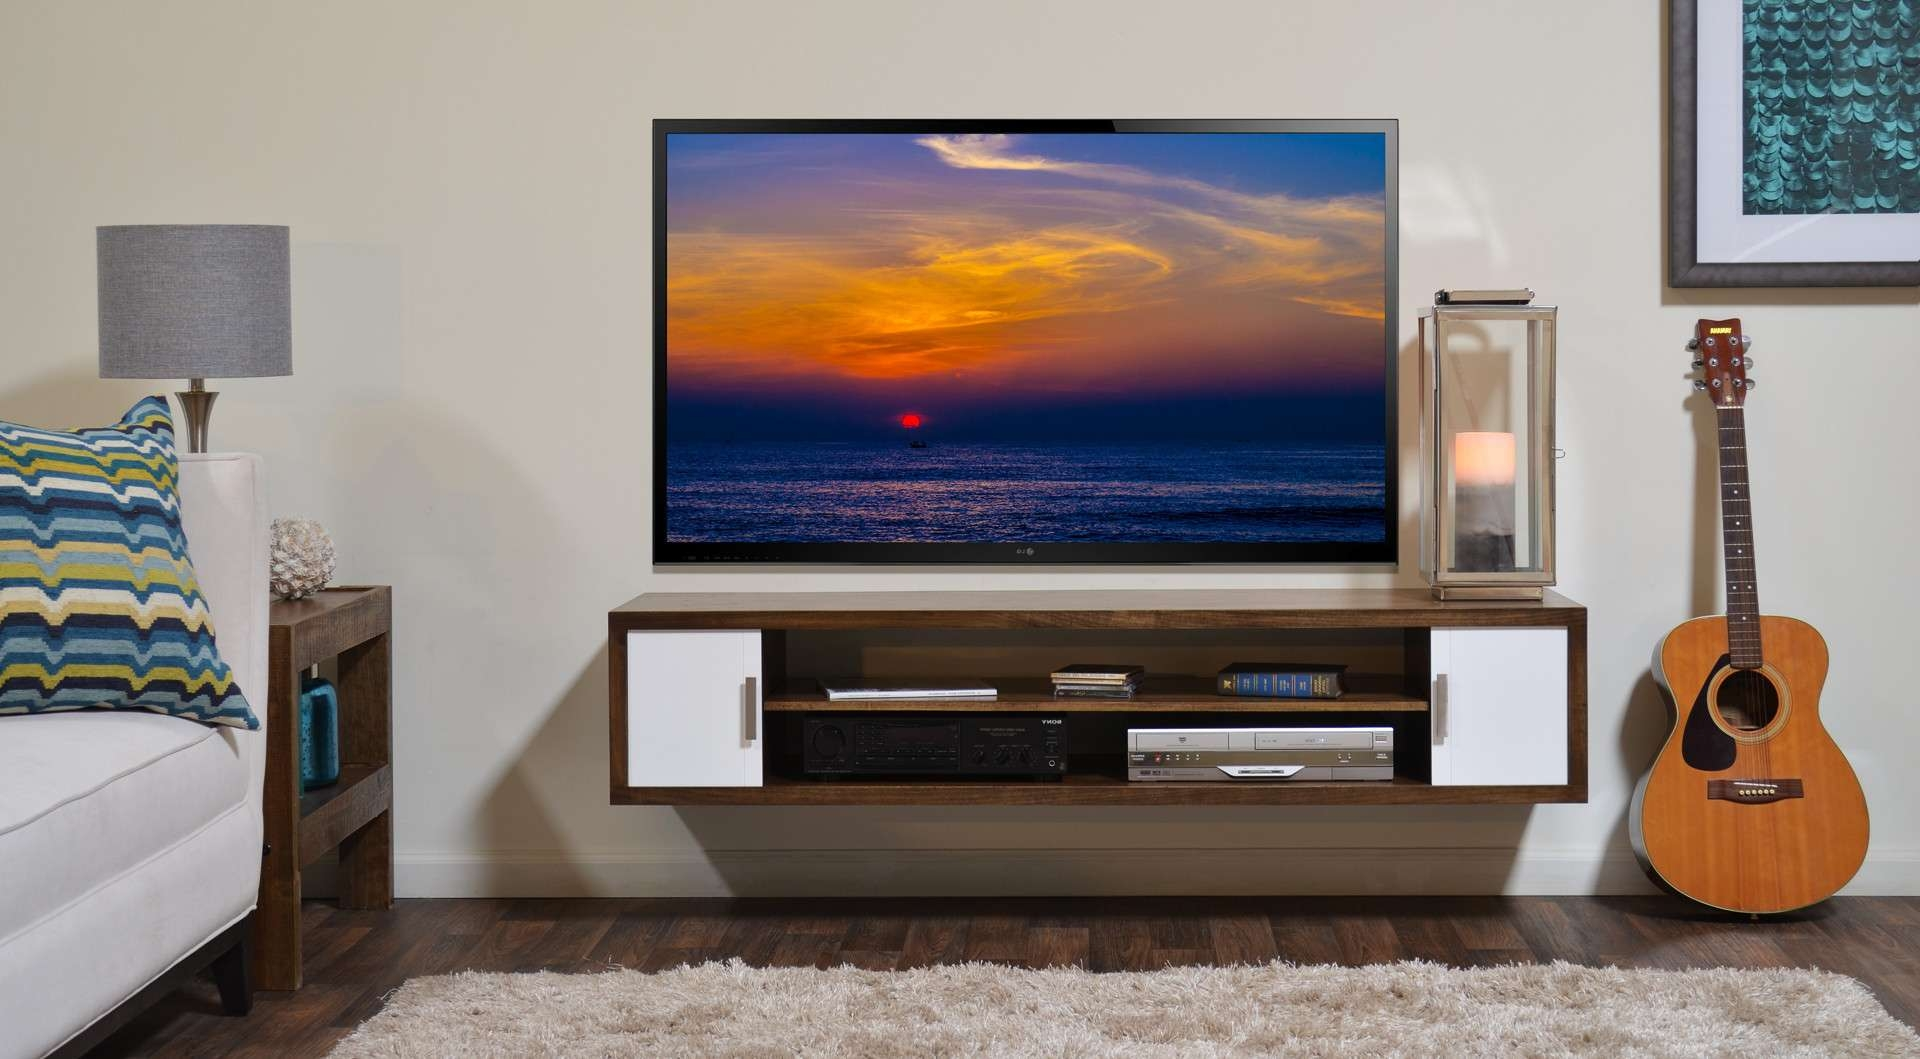 Nice Design Of The Tv Stand White Wall Can Be Decor With Wooden With Regard To White Wall Mounted Tv Stands (View 6 of 15)